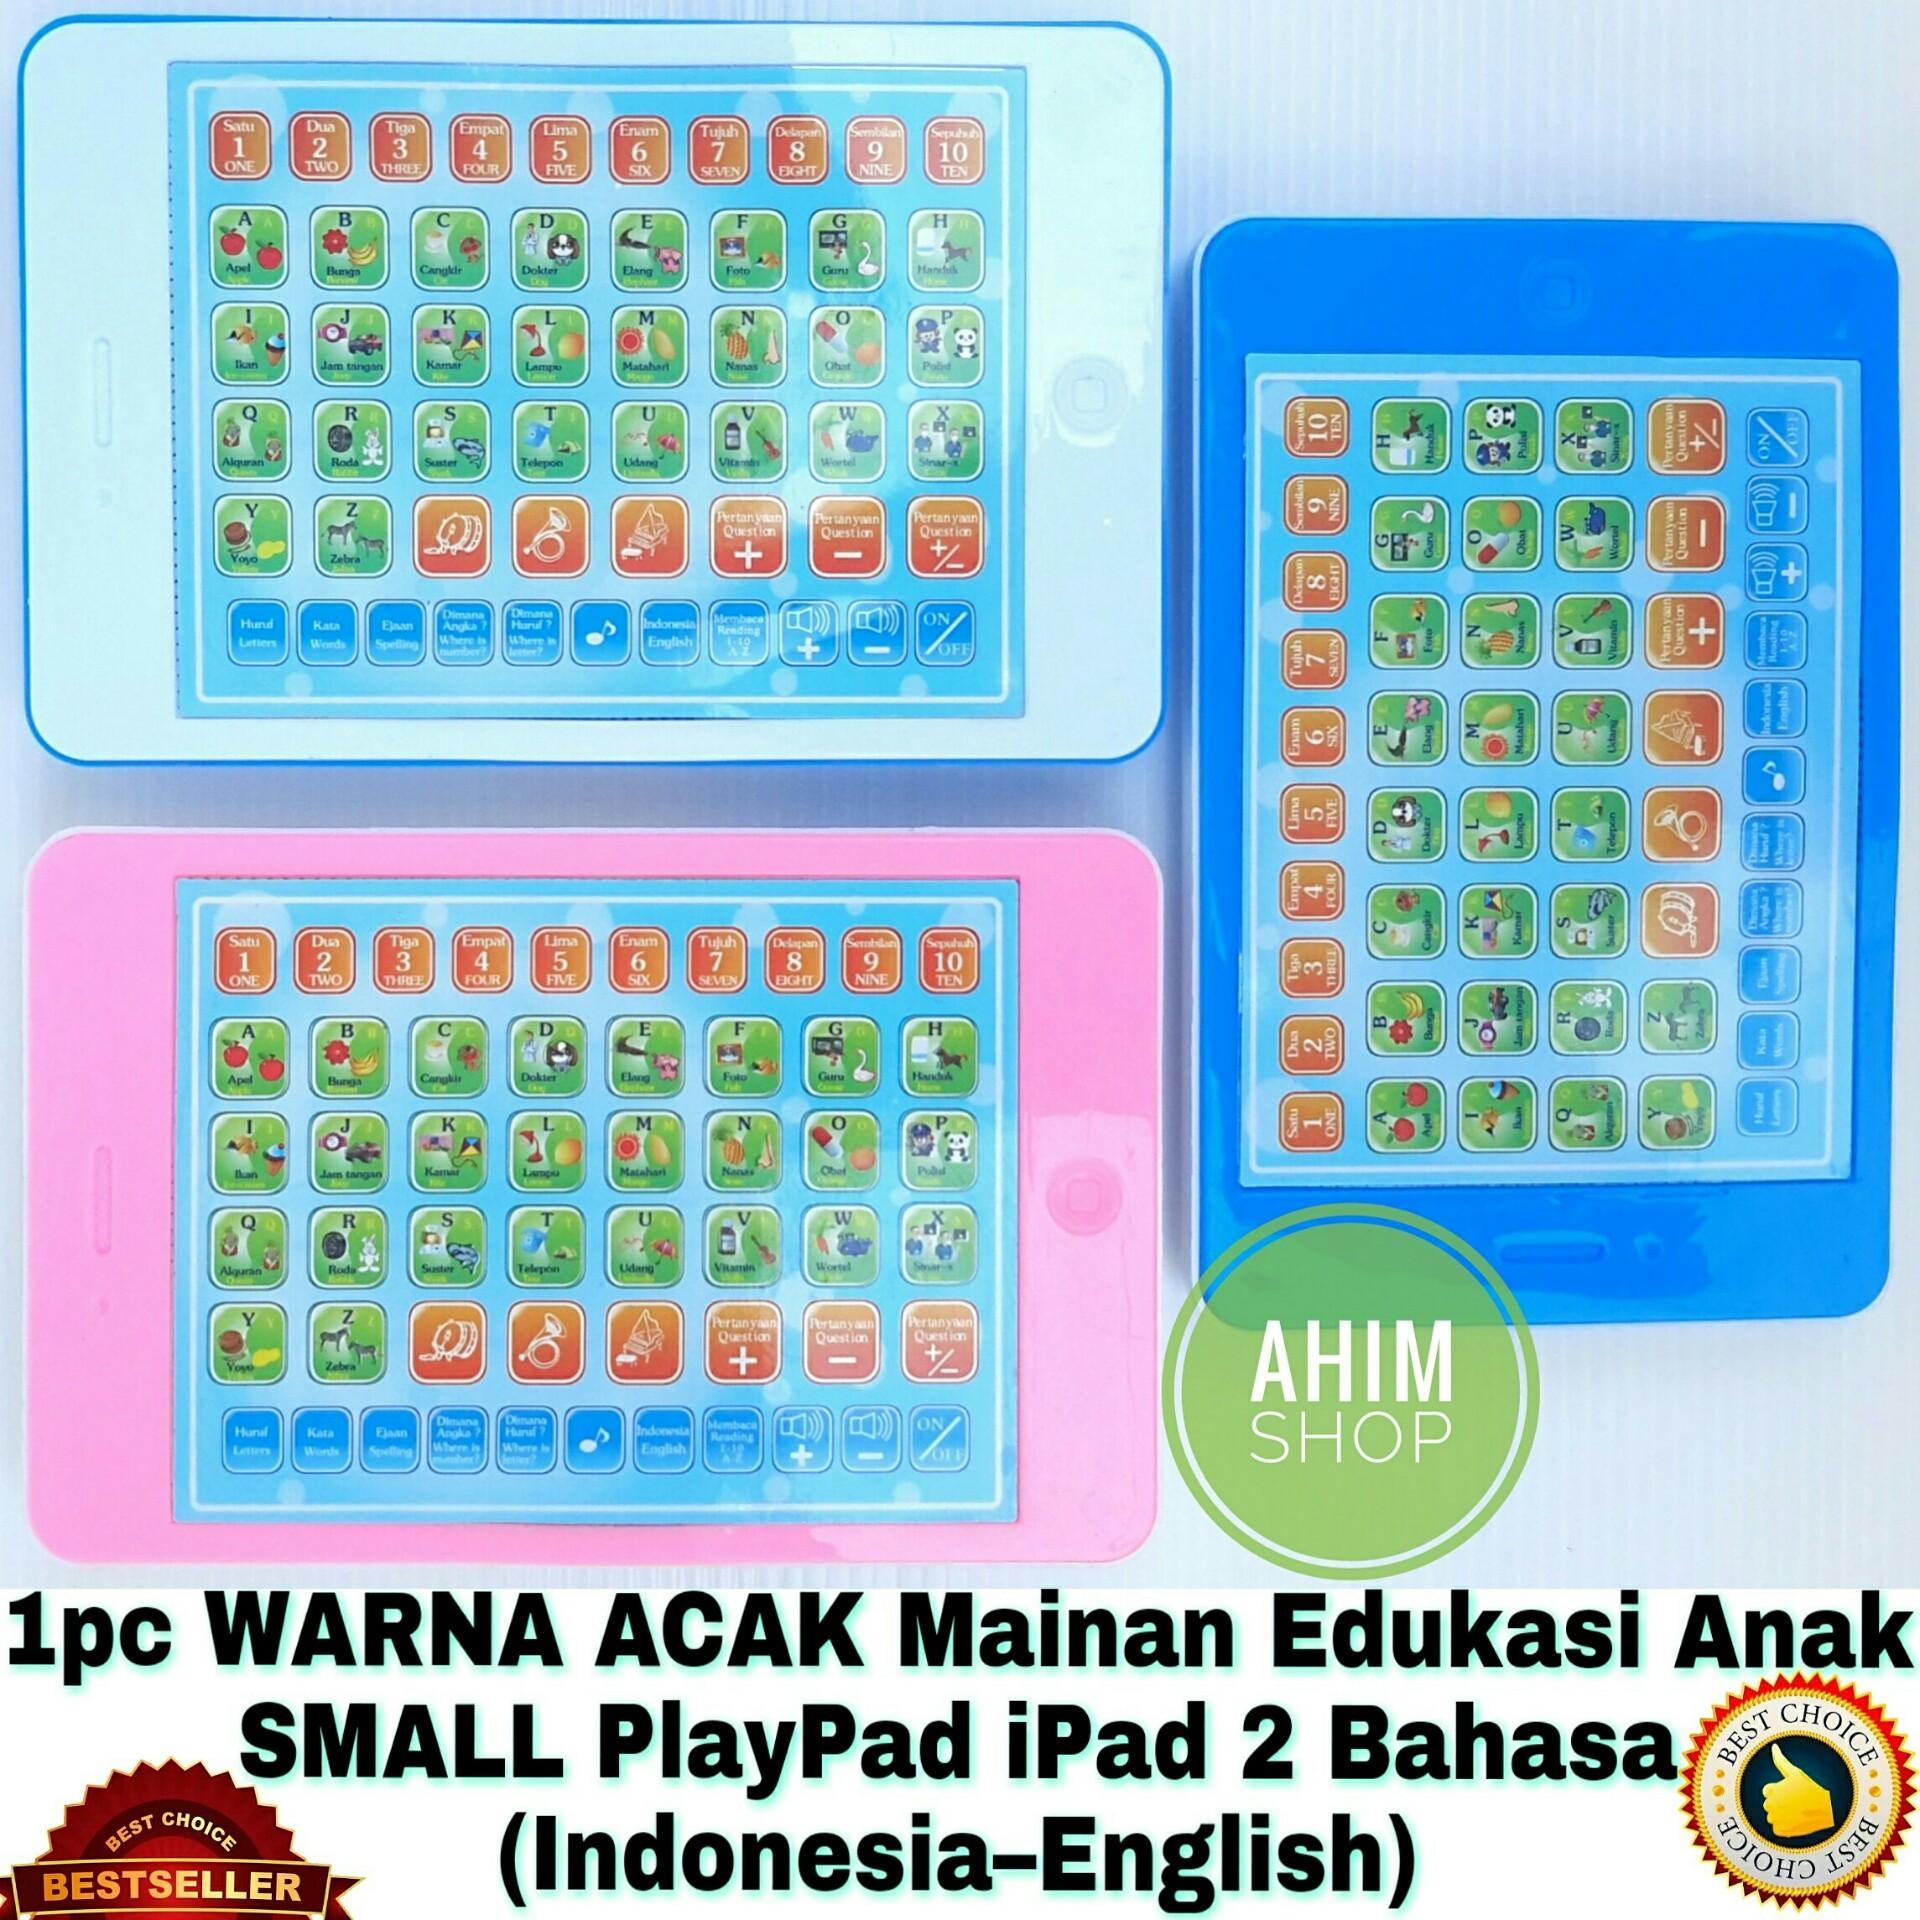 1pc Warna Acak Mainan Edukasi Anak 18 Fungsi Small / Mini PlayPad iPad 2 Bahasa (